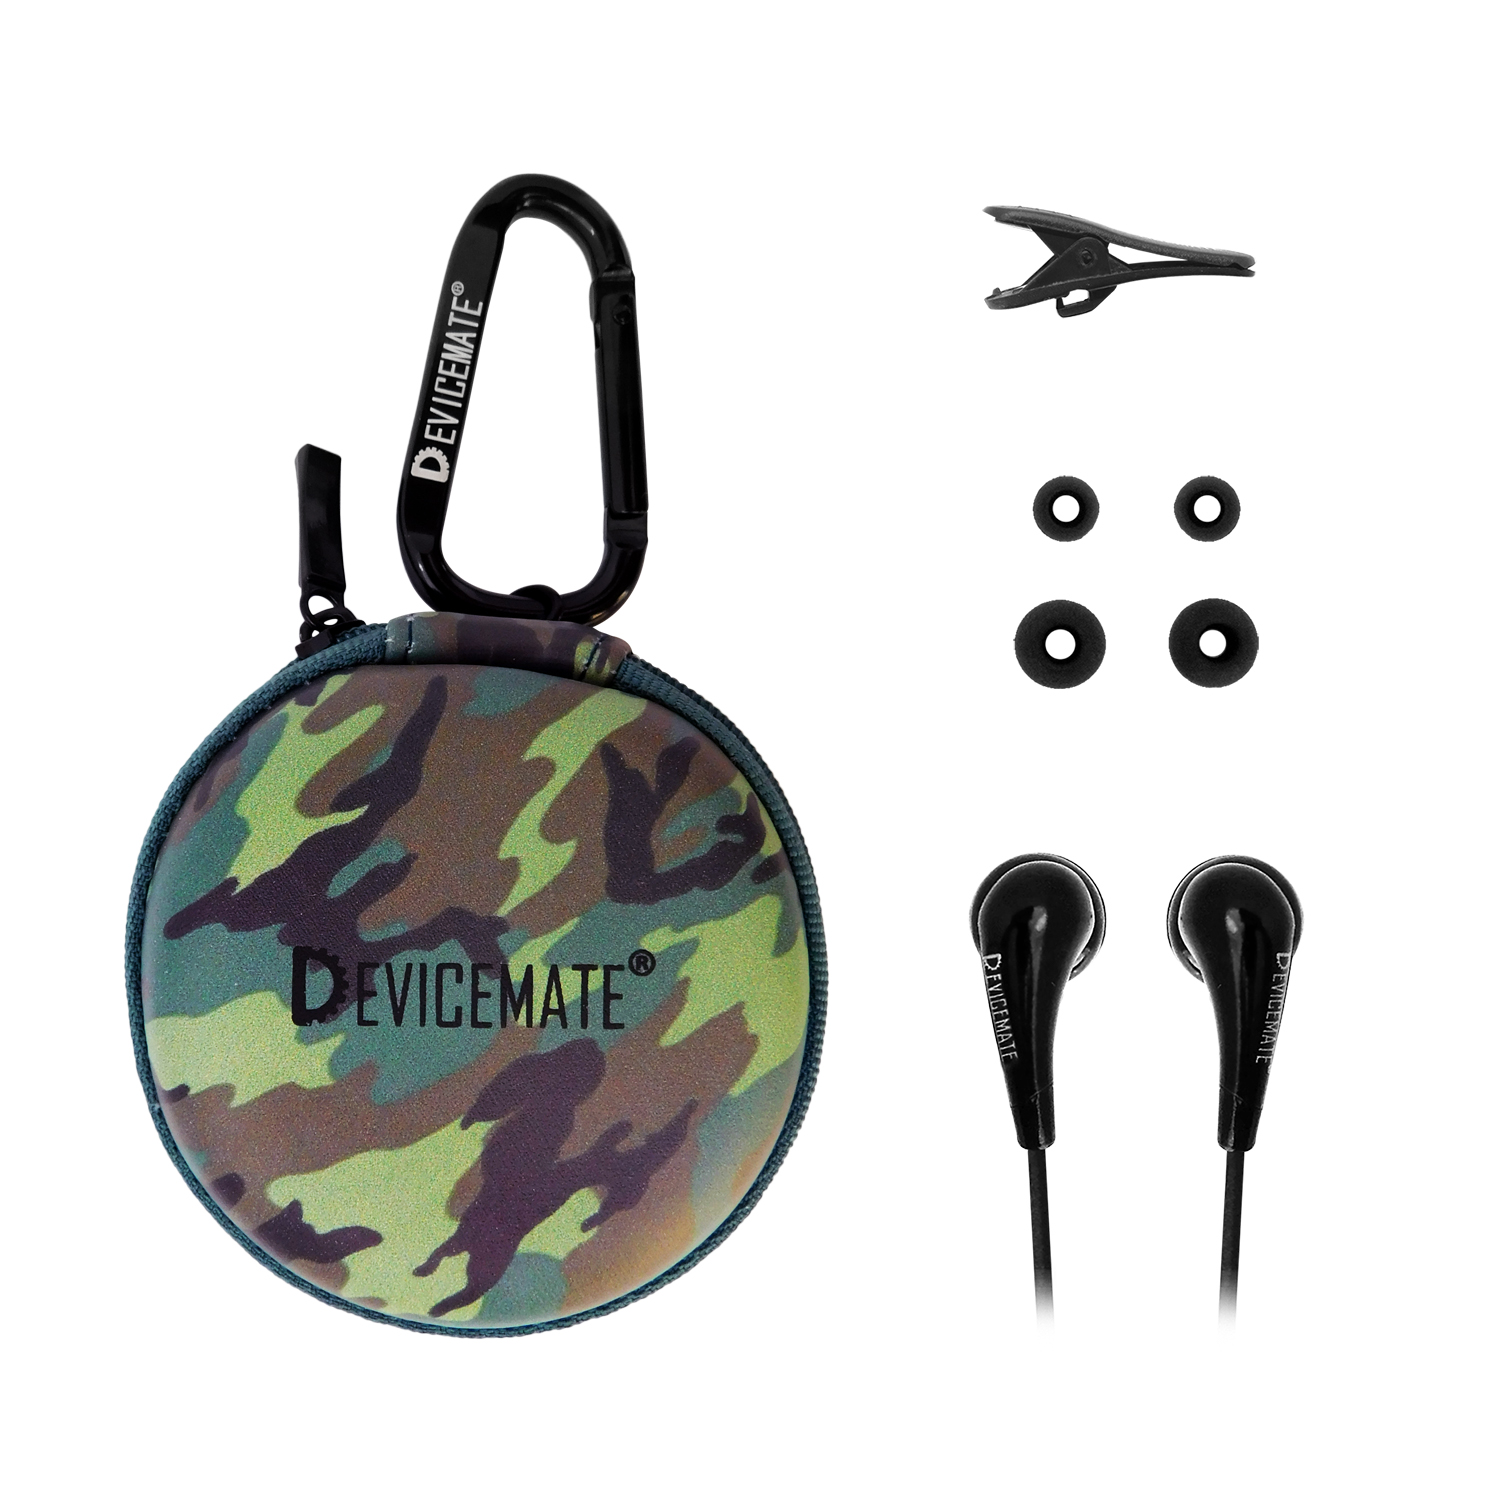 Devicemate SD 255-GCM In-Ear Stereo Earphones [Green Camo] Case